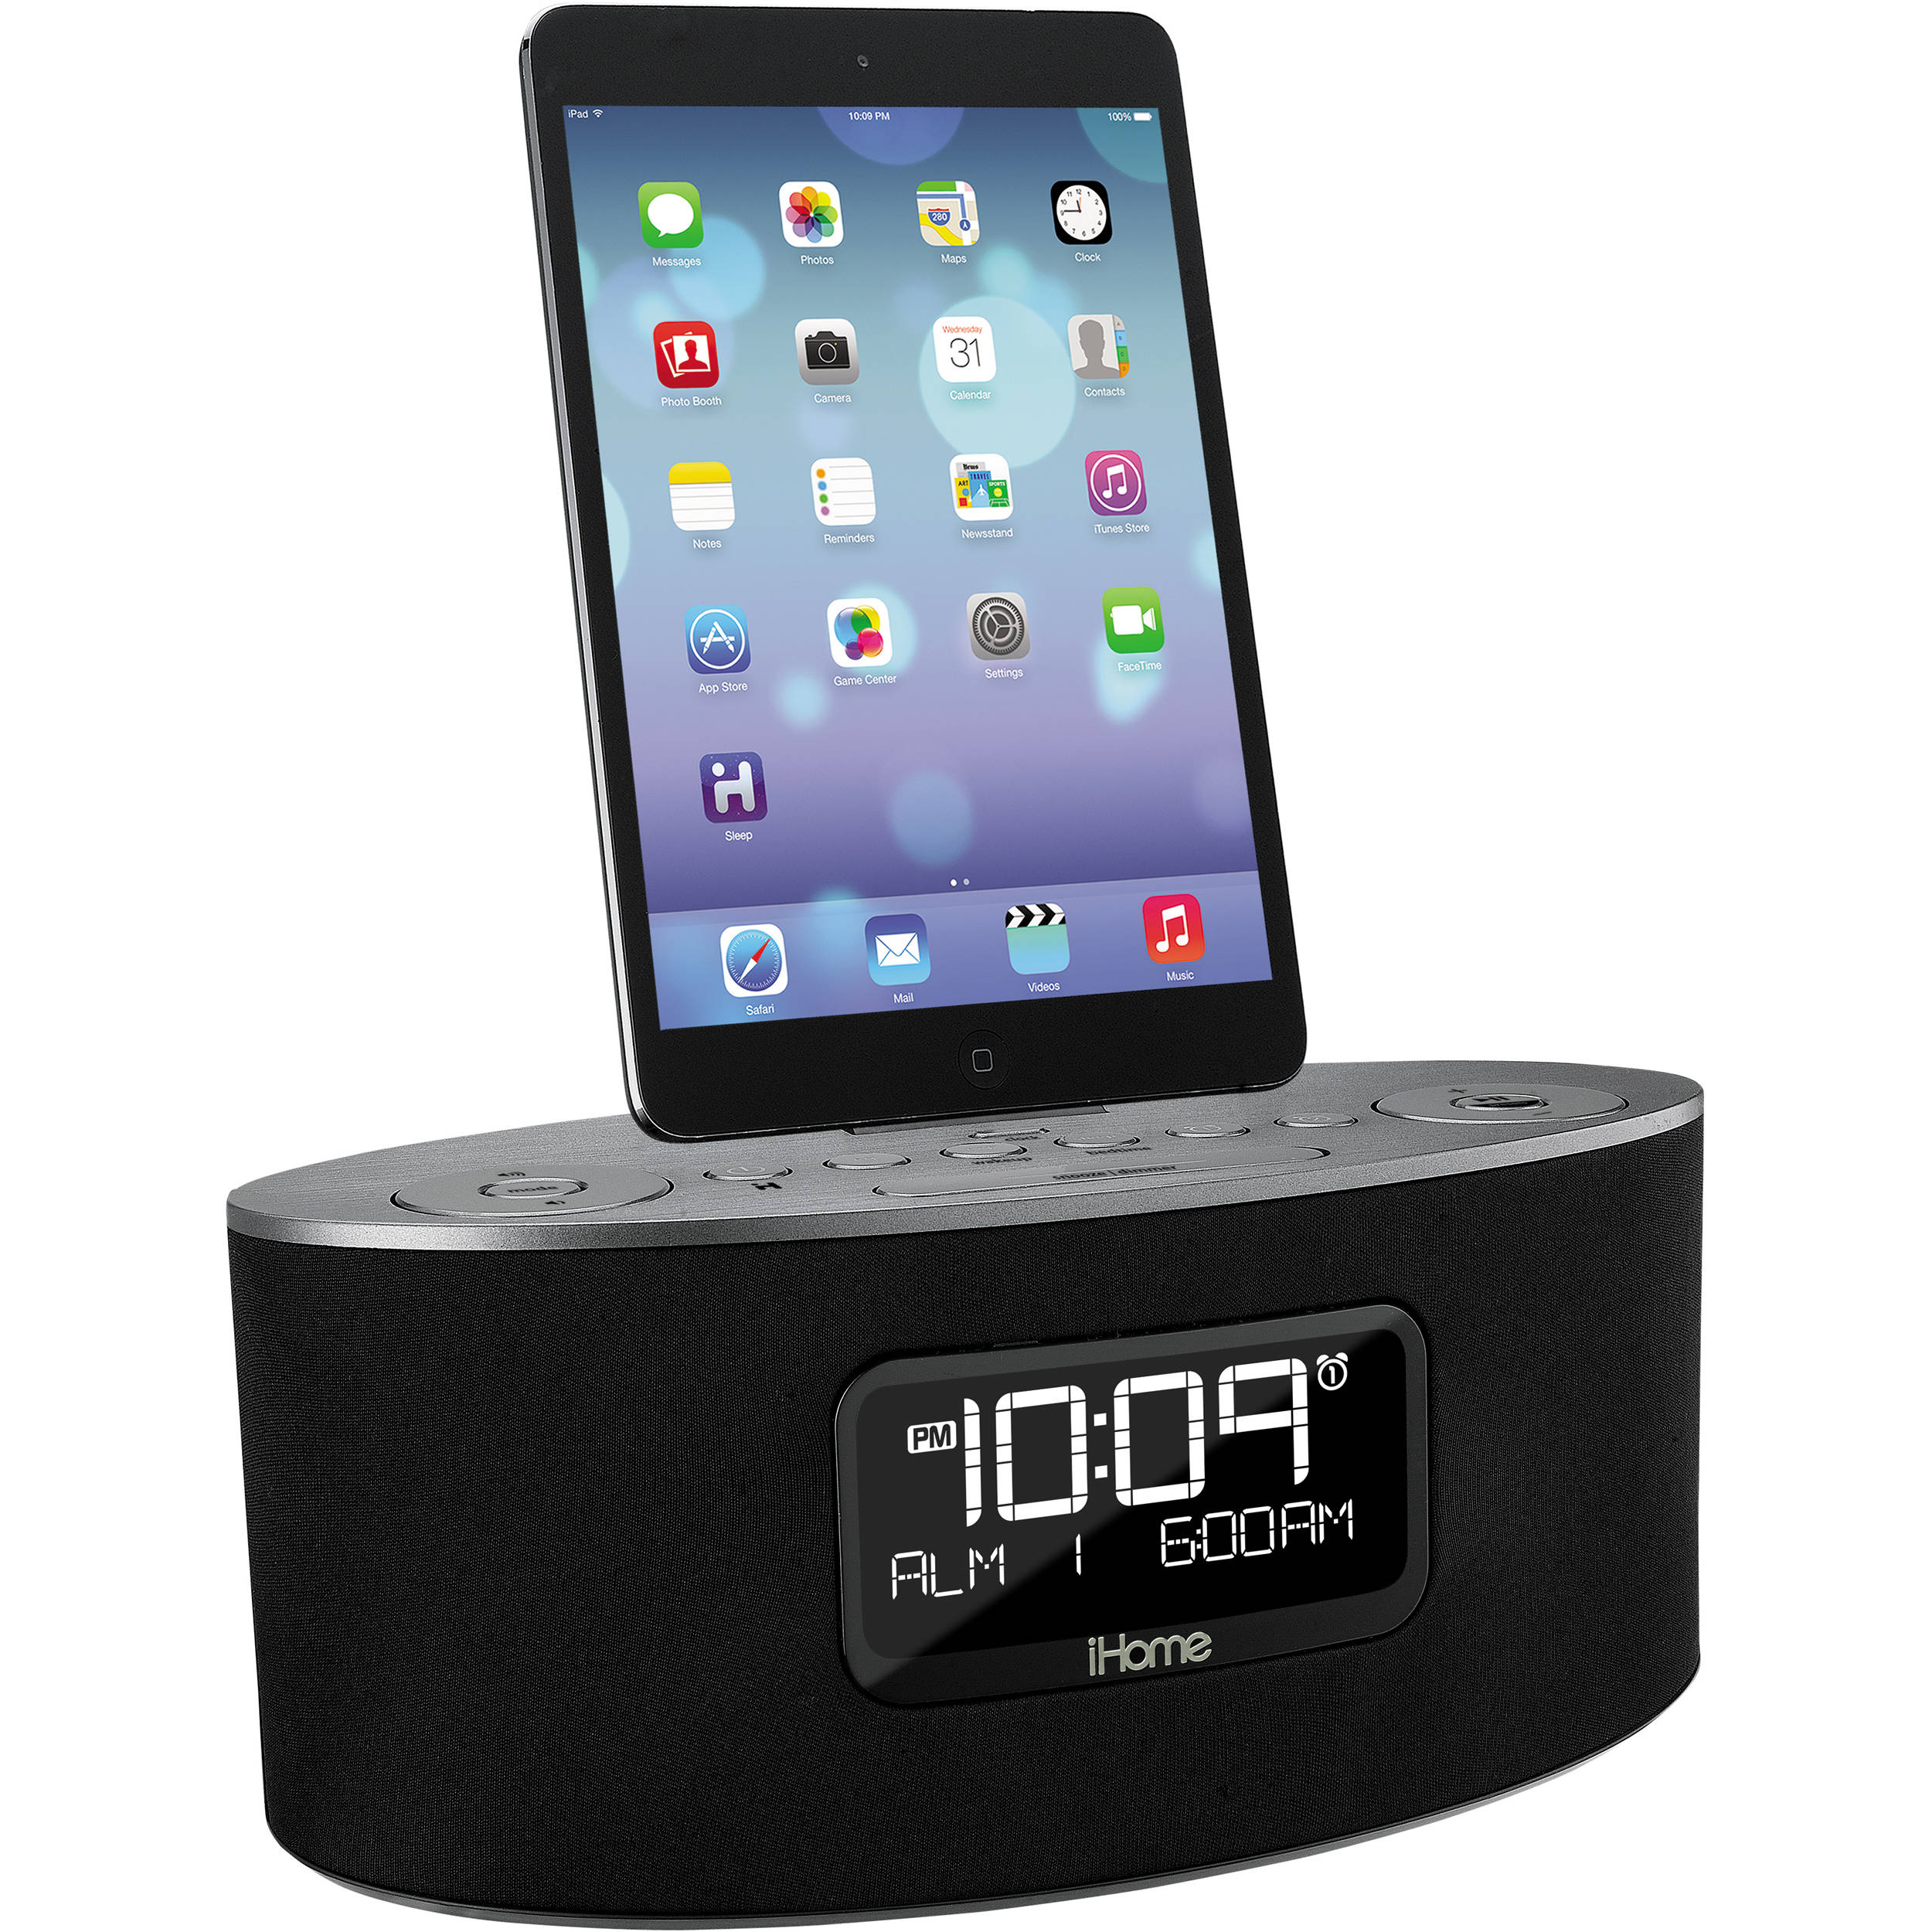 ihome idl46 stereo dual alarm clock radio ipad iphone. Black Bedroom Furniture Sets. Home Design Ideas